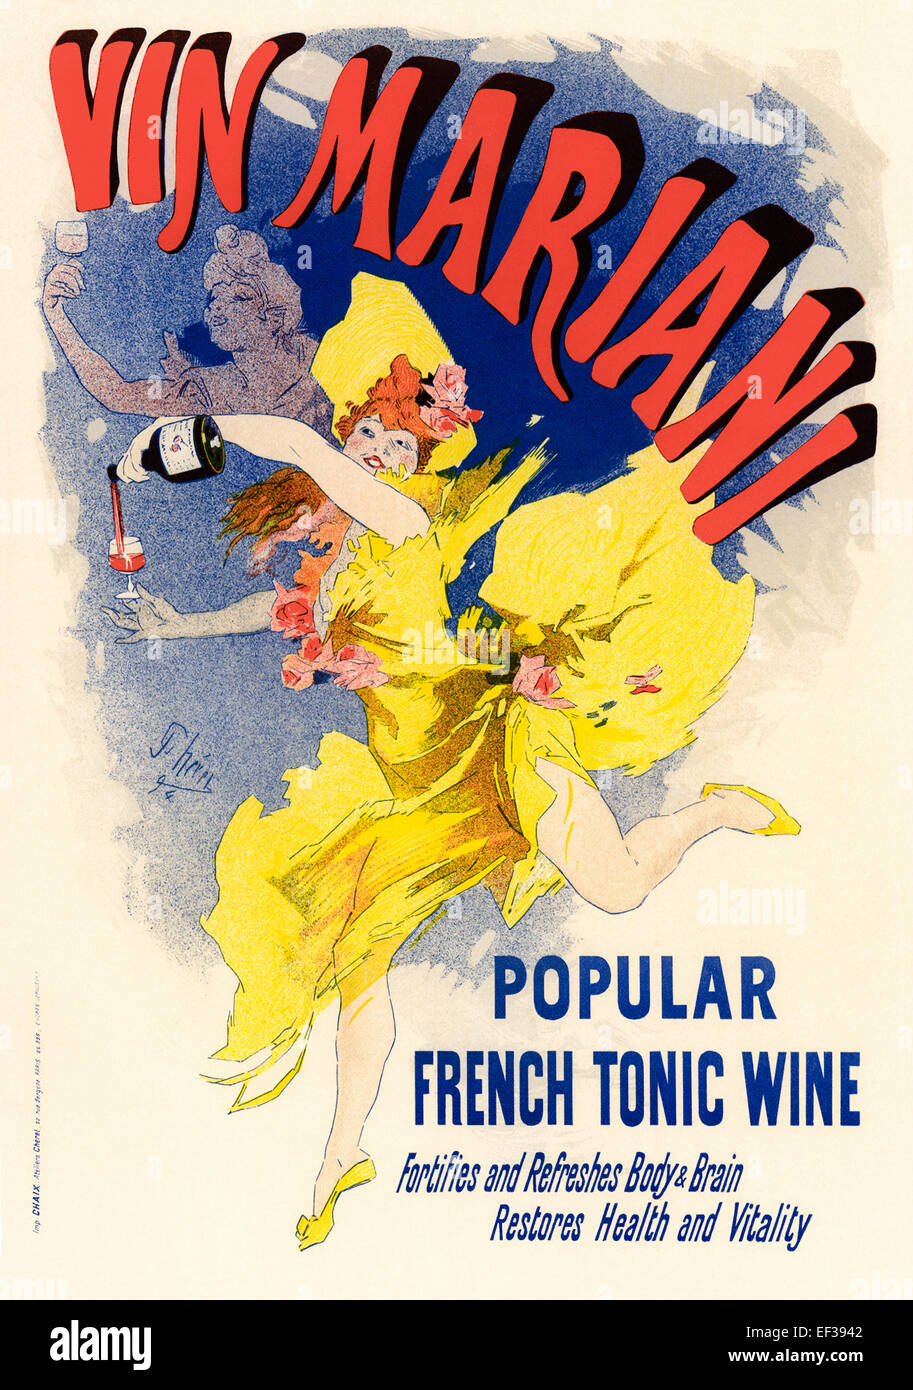 Jules Chéret's (1836-1932) 'Vin Mariani' poster in the Belle Époque style produced in 1884. - Stock Image